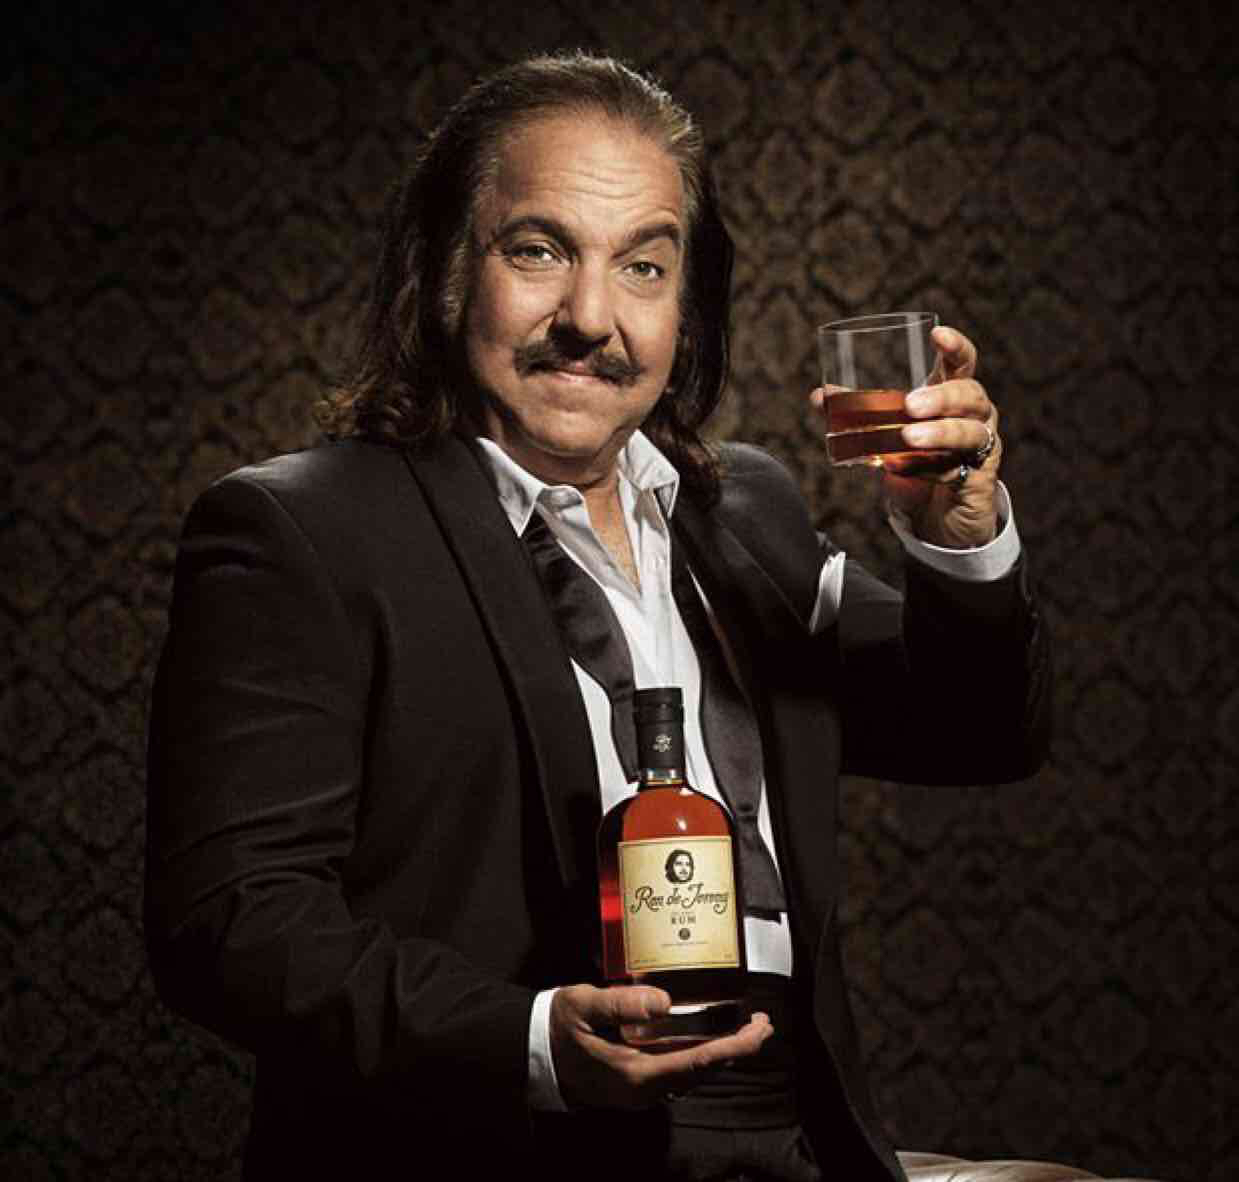 Avatar of Ron Jeremy